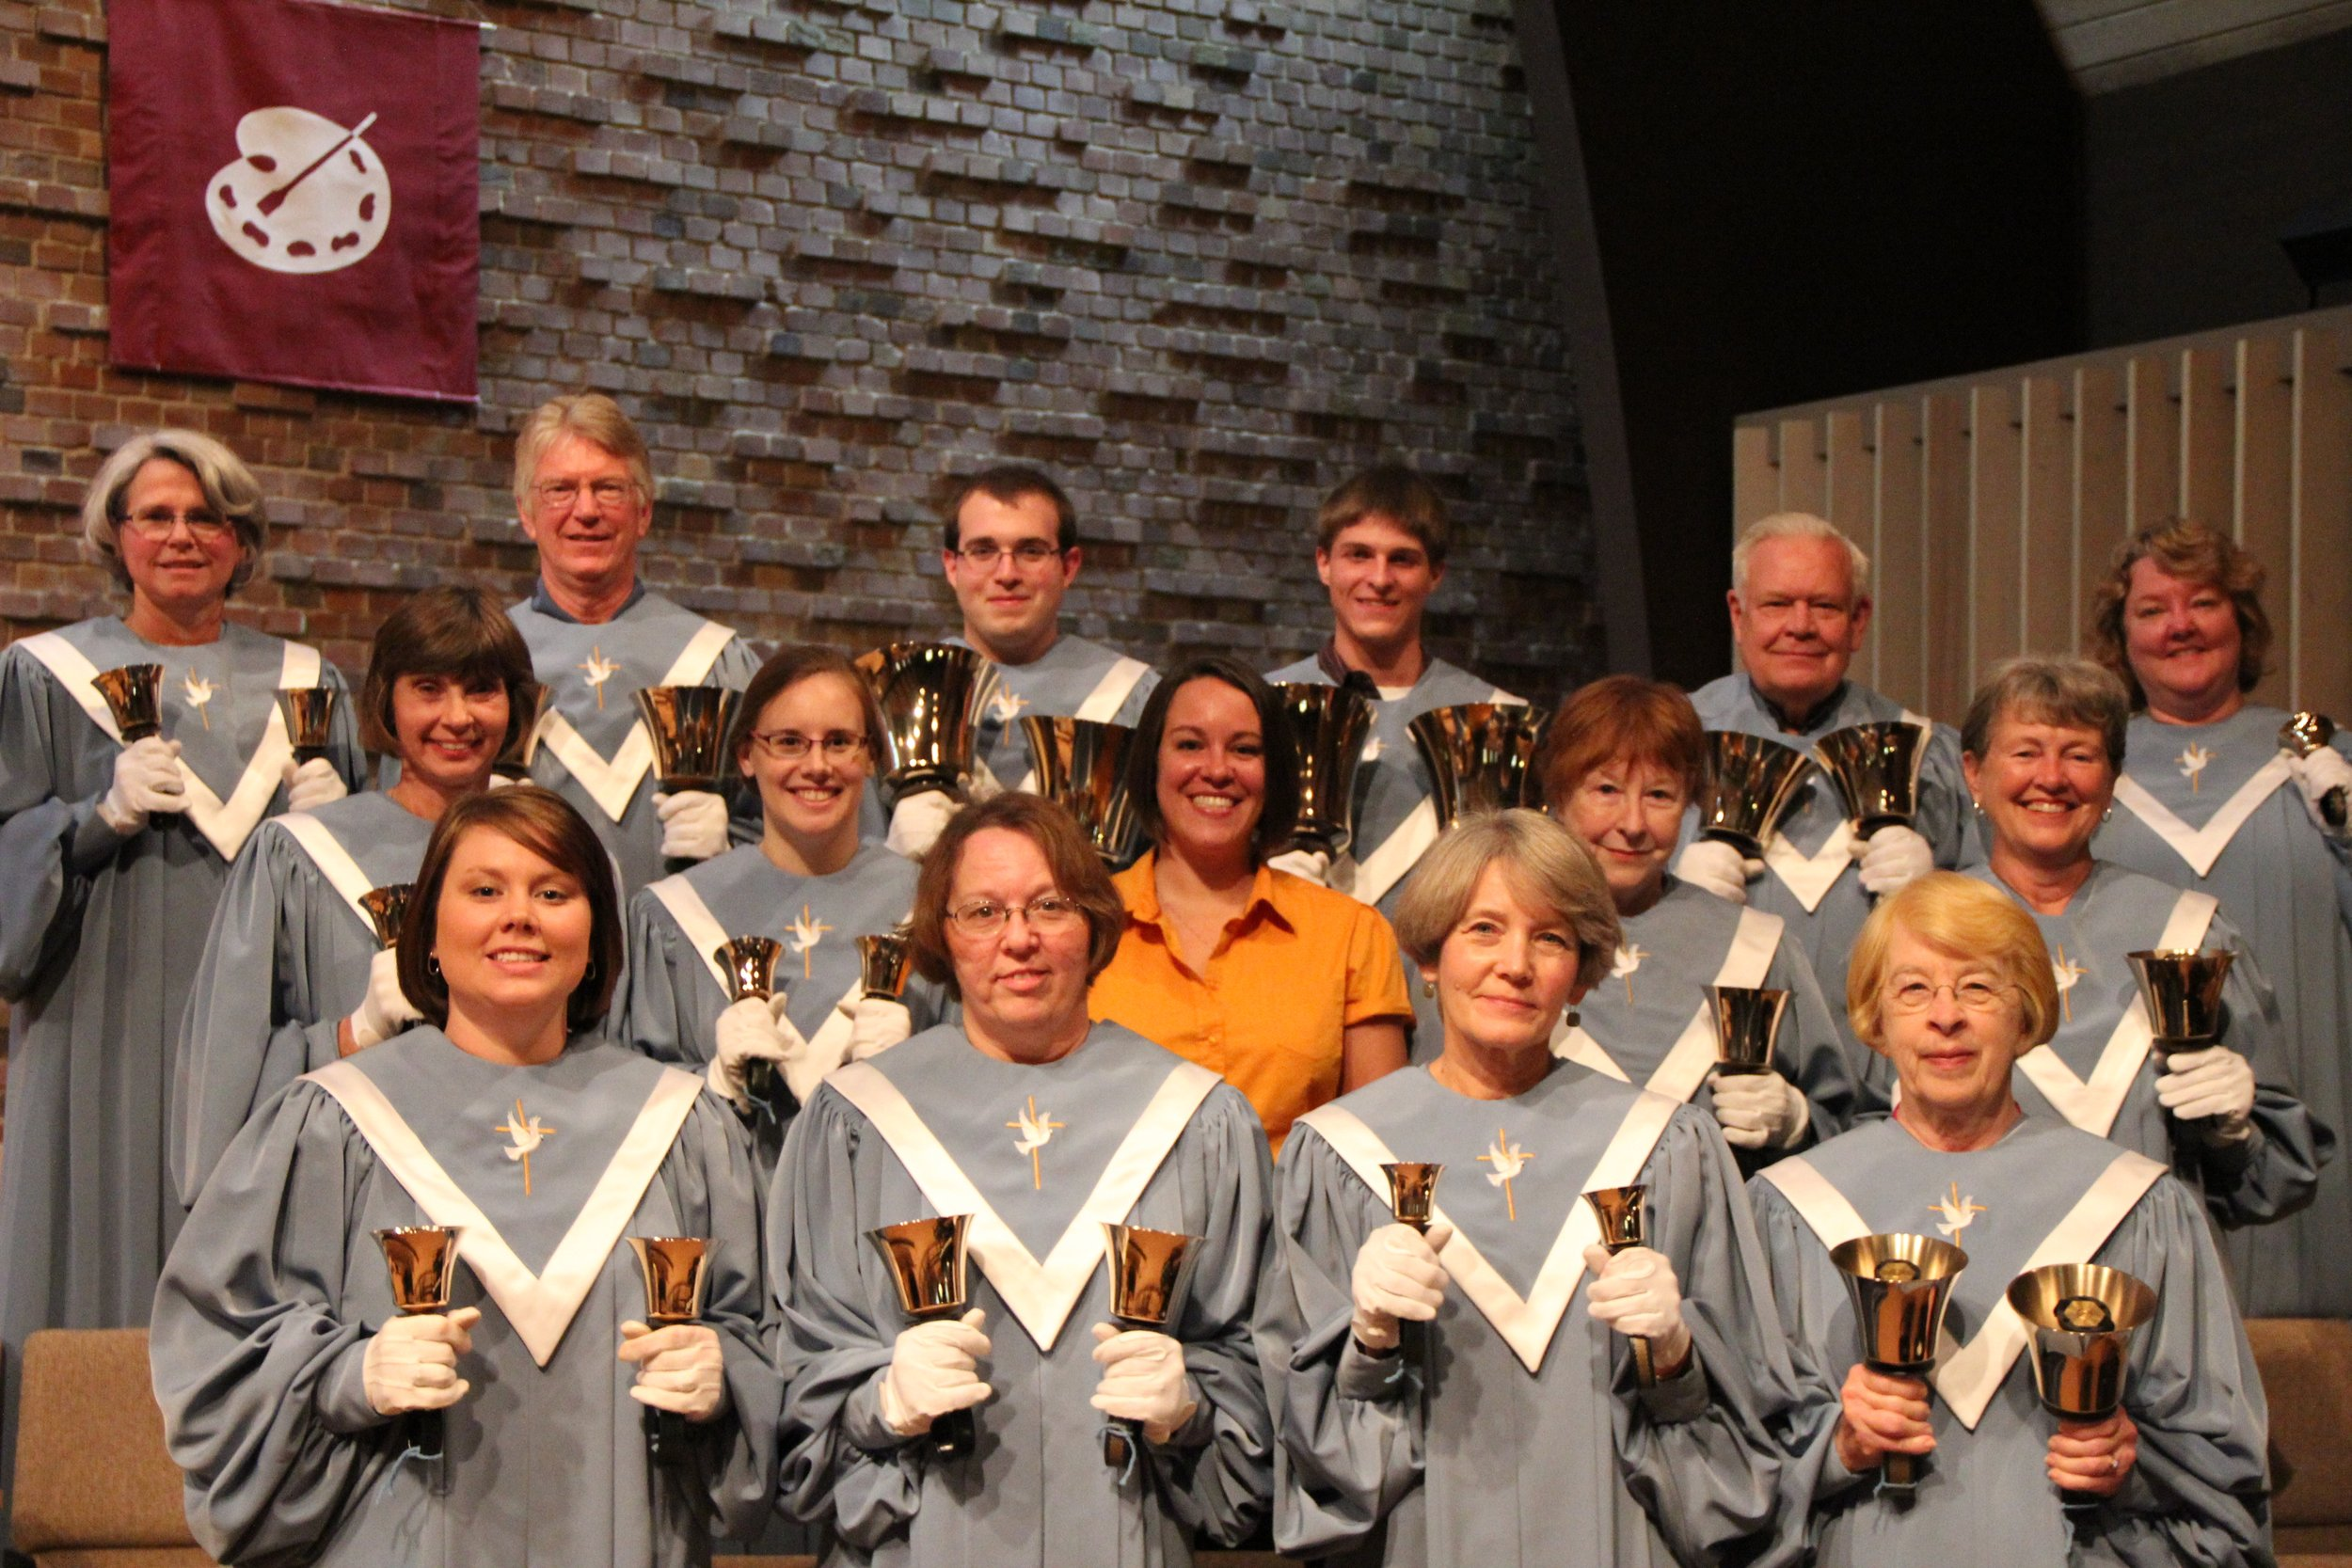 Handbell Ringers - The handbell choir rehearses Thursdays from 6:15-7:15 and plays in worship one or two Sundays each month. New or experienced ringers are invited to join at any rehearsal. If you can count to four, you can probably enjoy playing handbells. Experience the fellowship with other ringers and the many benefits of playing music.